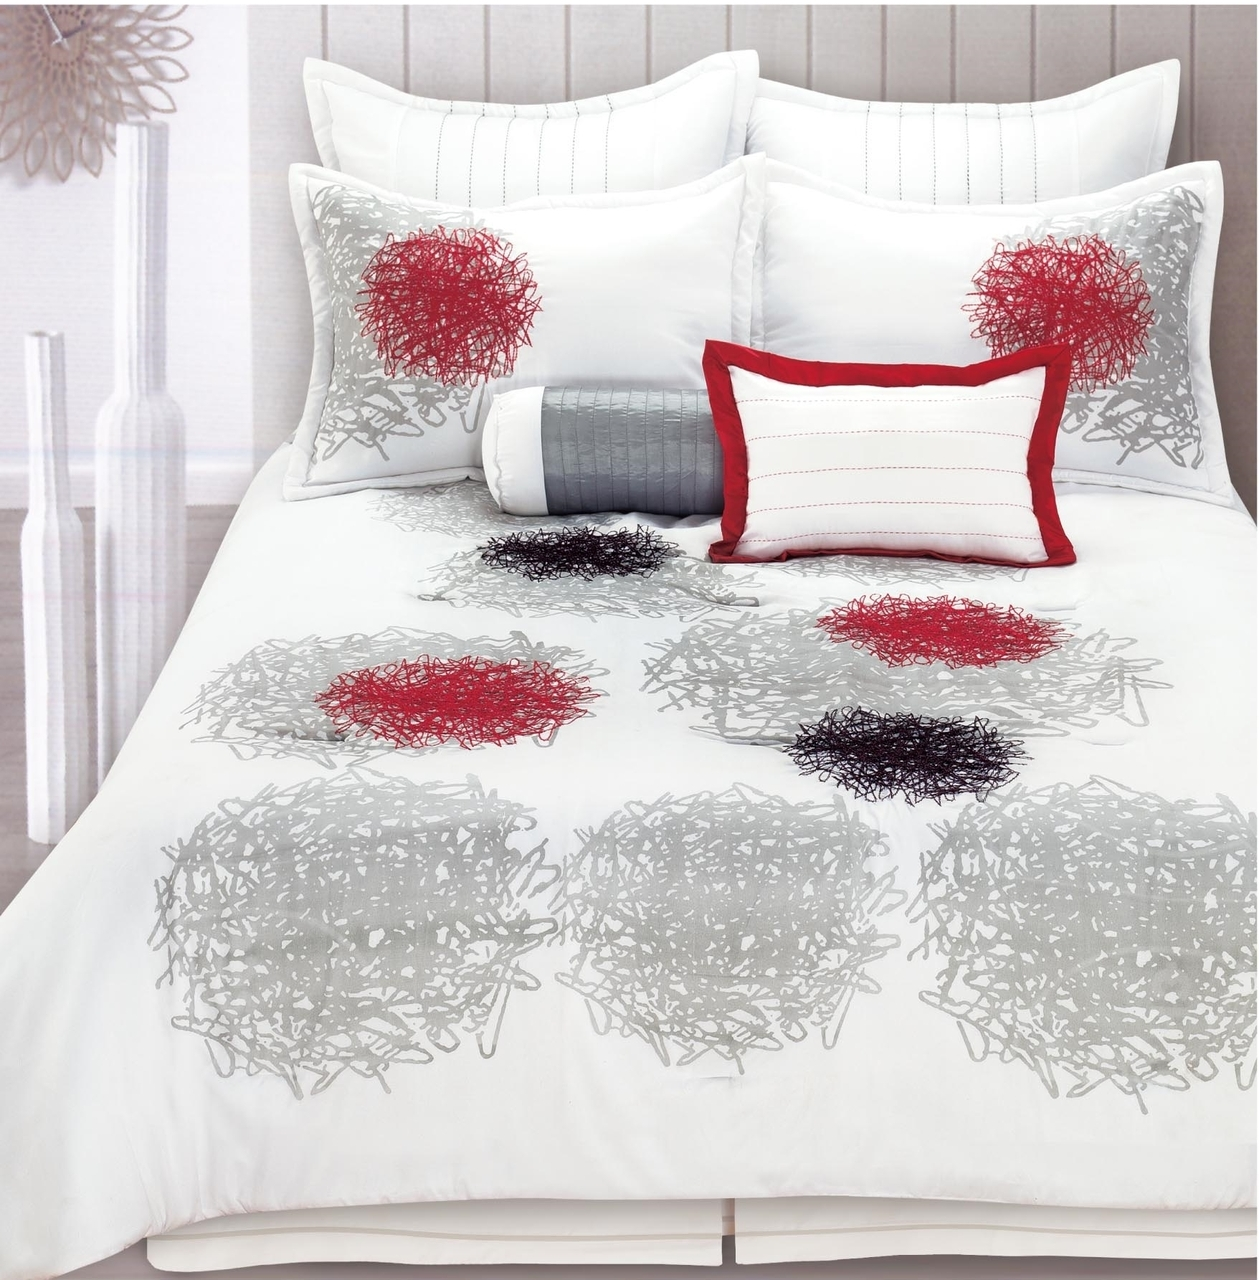 Jolie 8 Piece Comforter Set